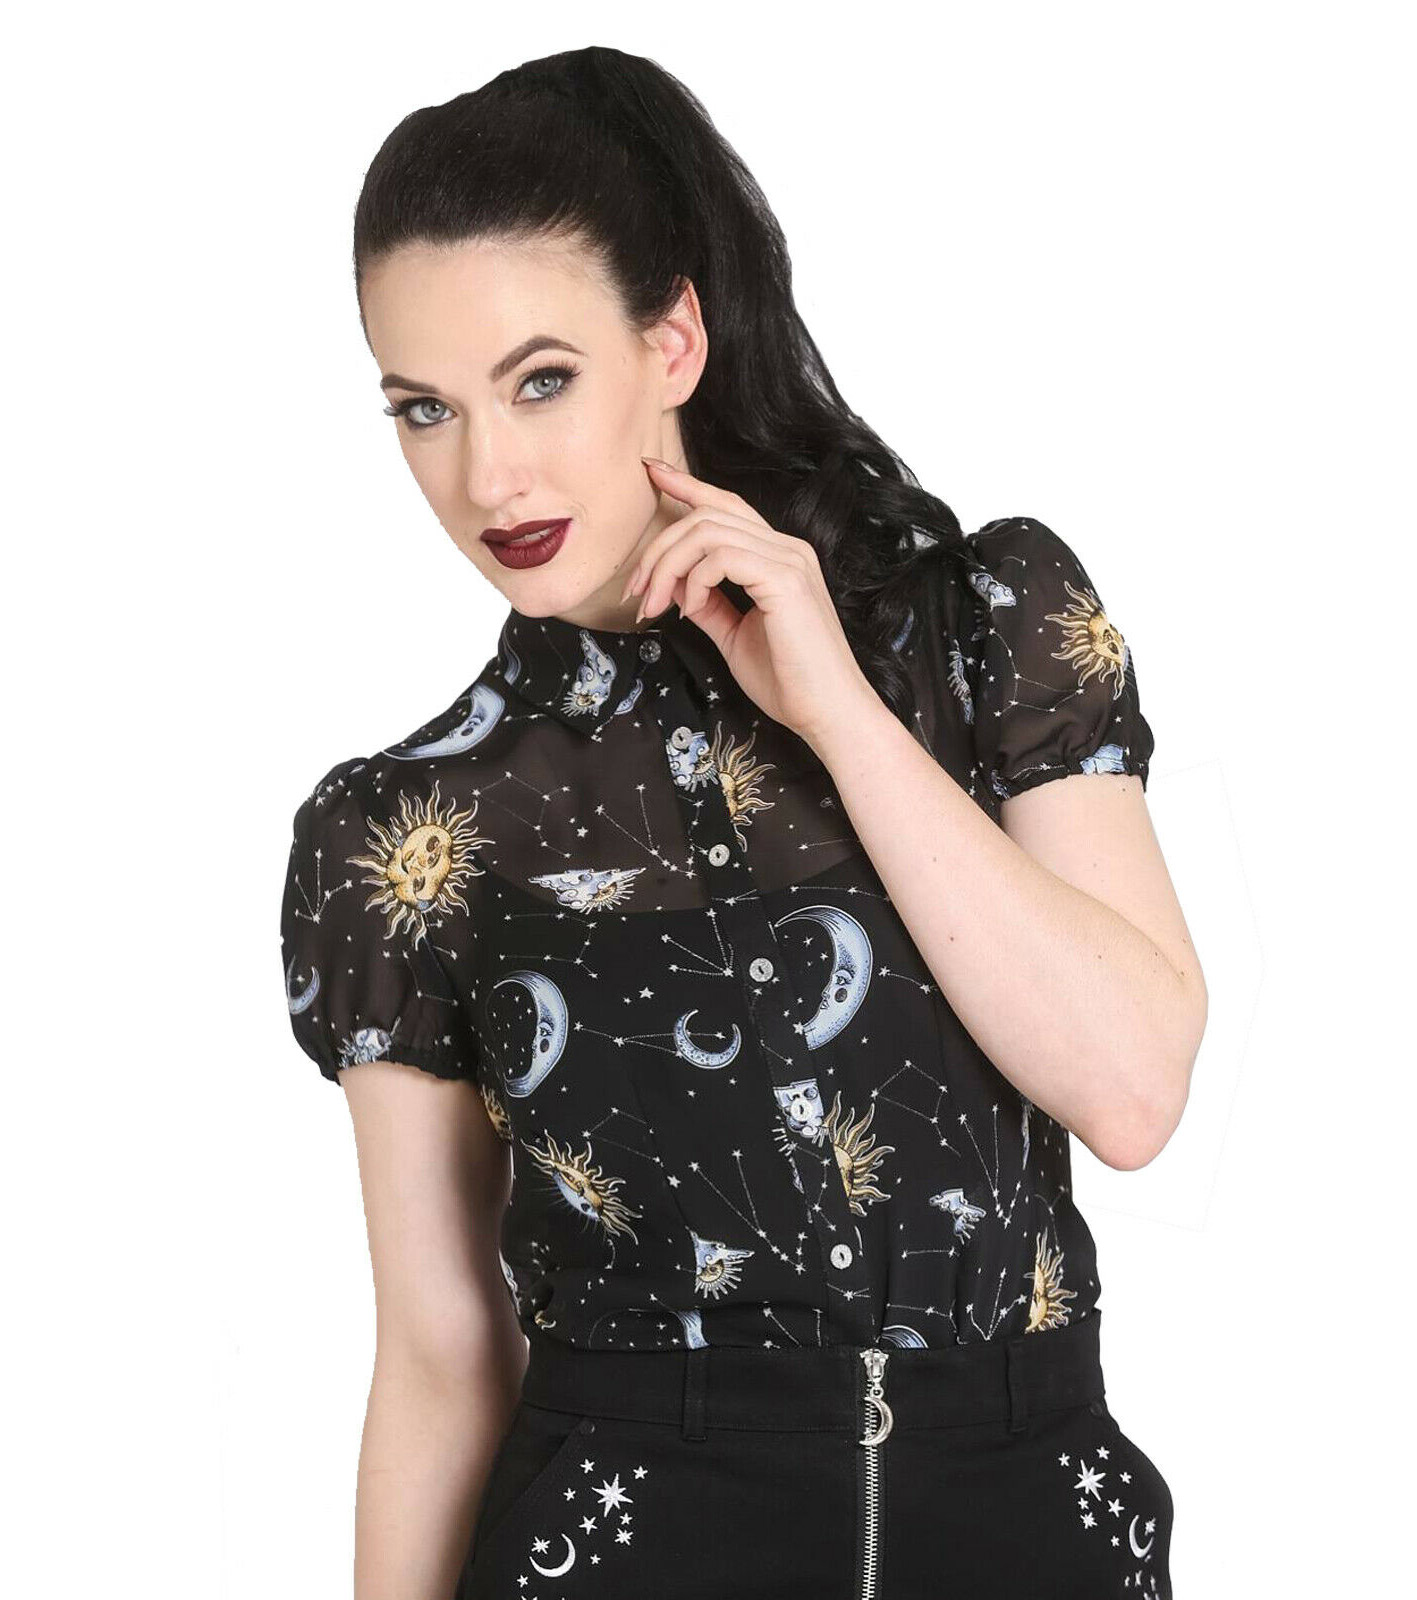 Hell-Bunny-50s-Shirt-Top-Gothic-Black-Sun-Moon-Stars-SOLARIS-Blouse-All-Sizes thumbnail 27